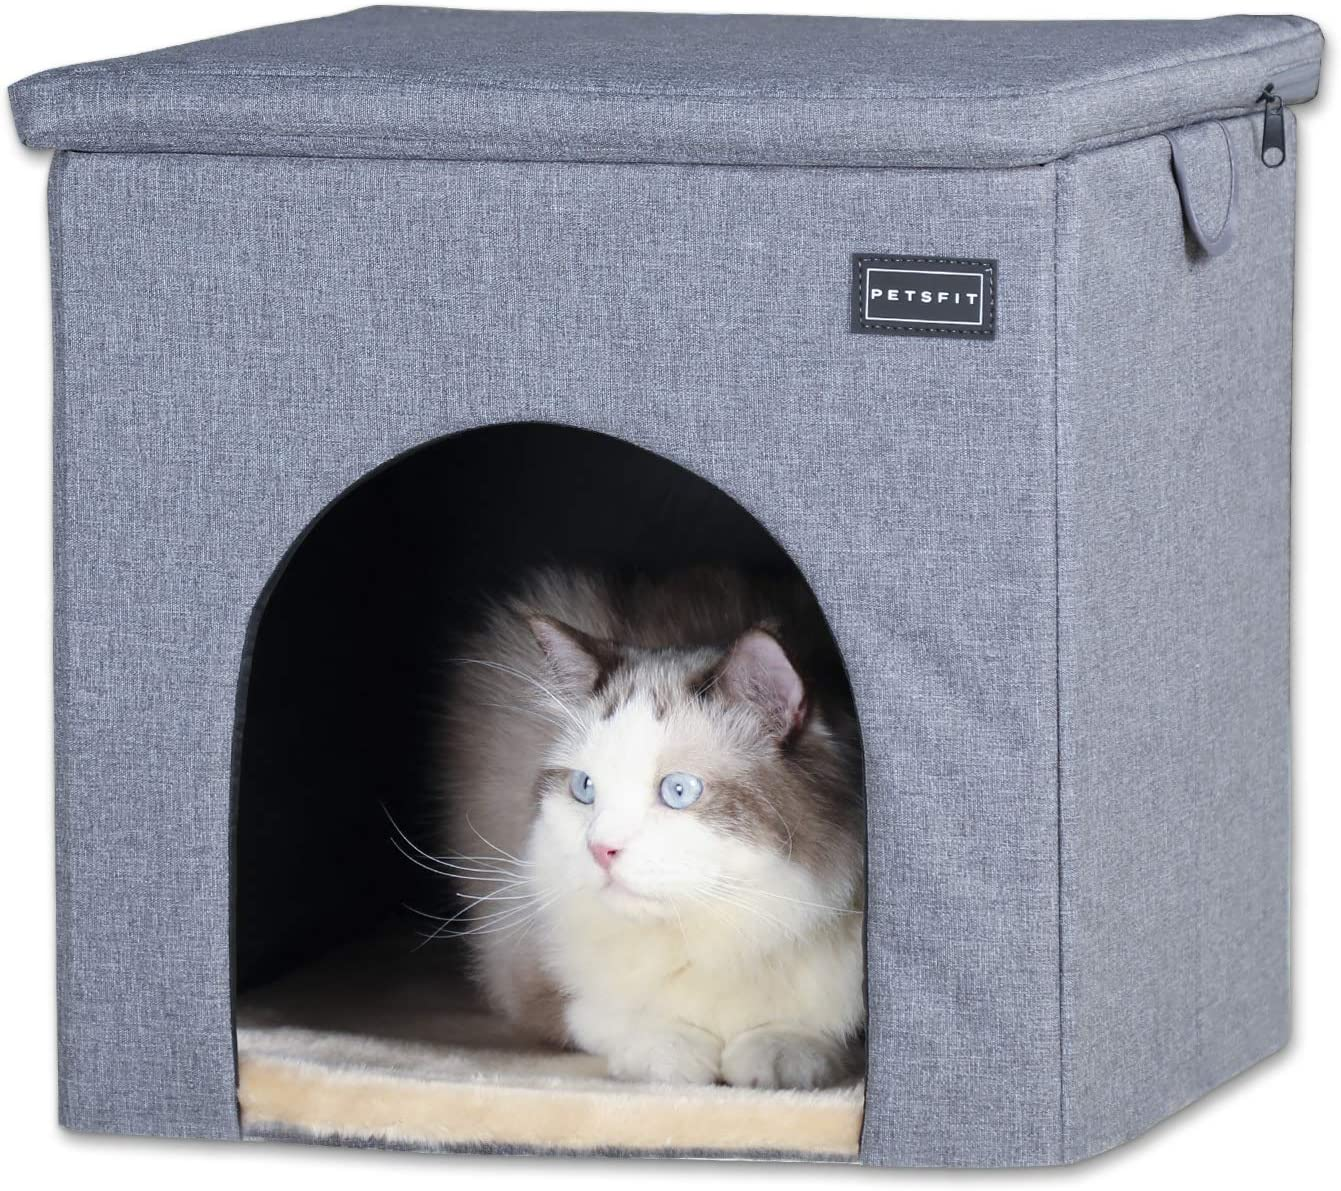 Petsfit Sturdy Cat House Chair Small Dog House Chair For Indoor Use Collapsible Washable Pet House Sturdiness And Easy To Assemble 16 X 16 X 16 5 Pet Supplies